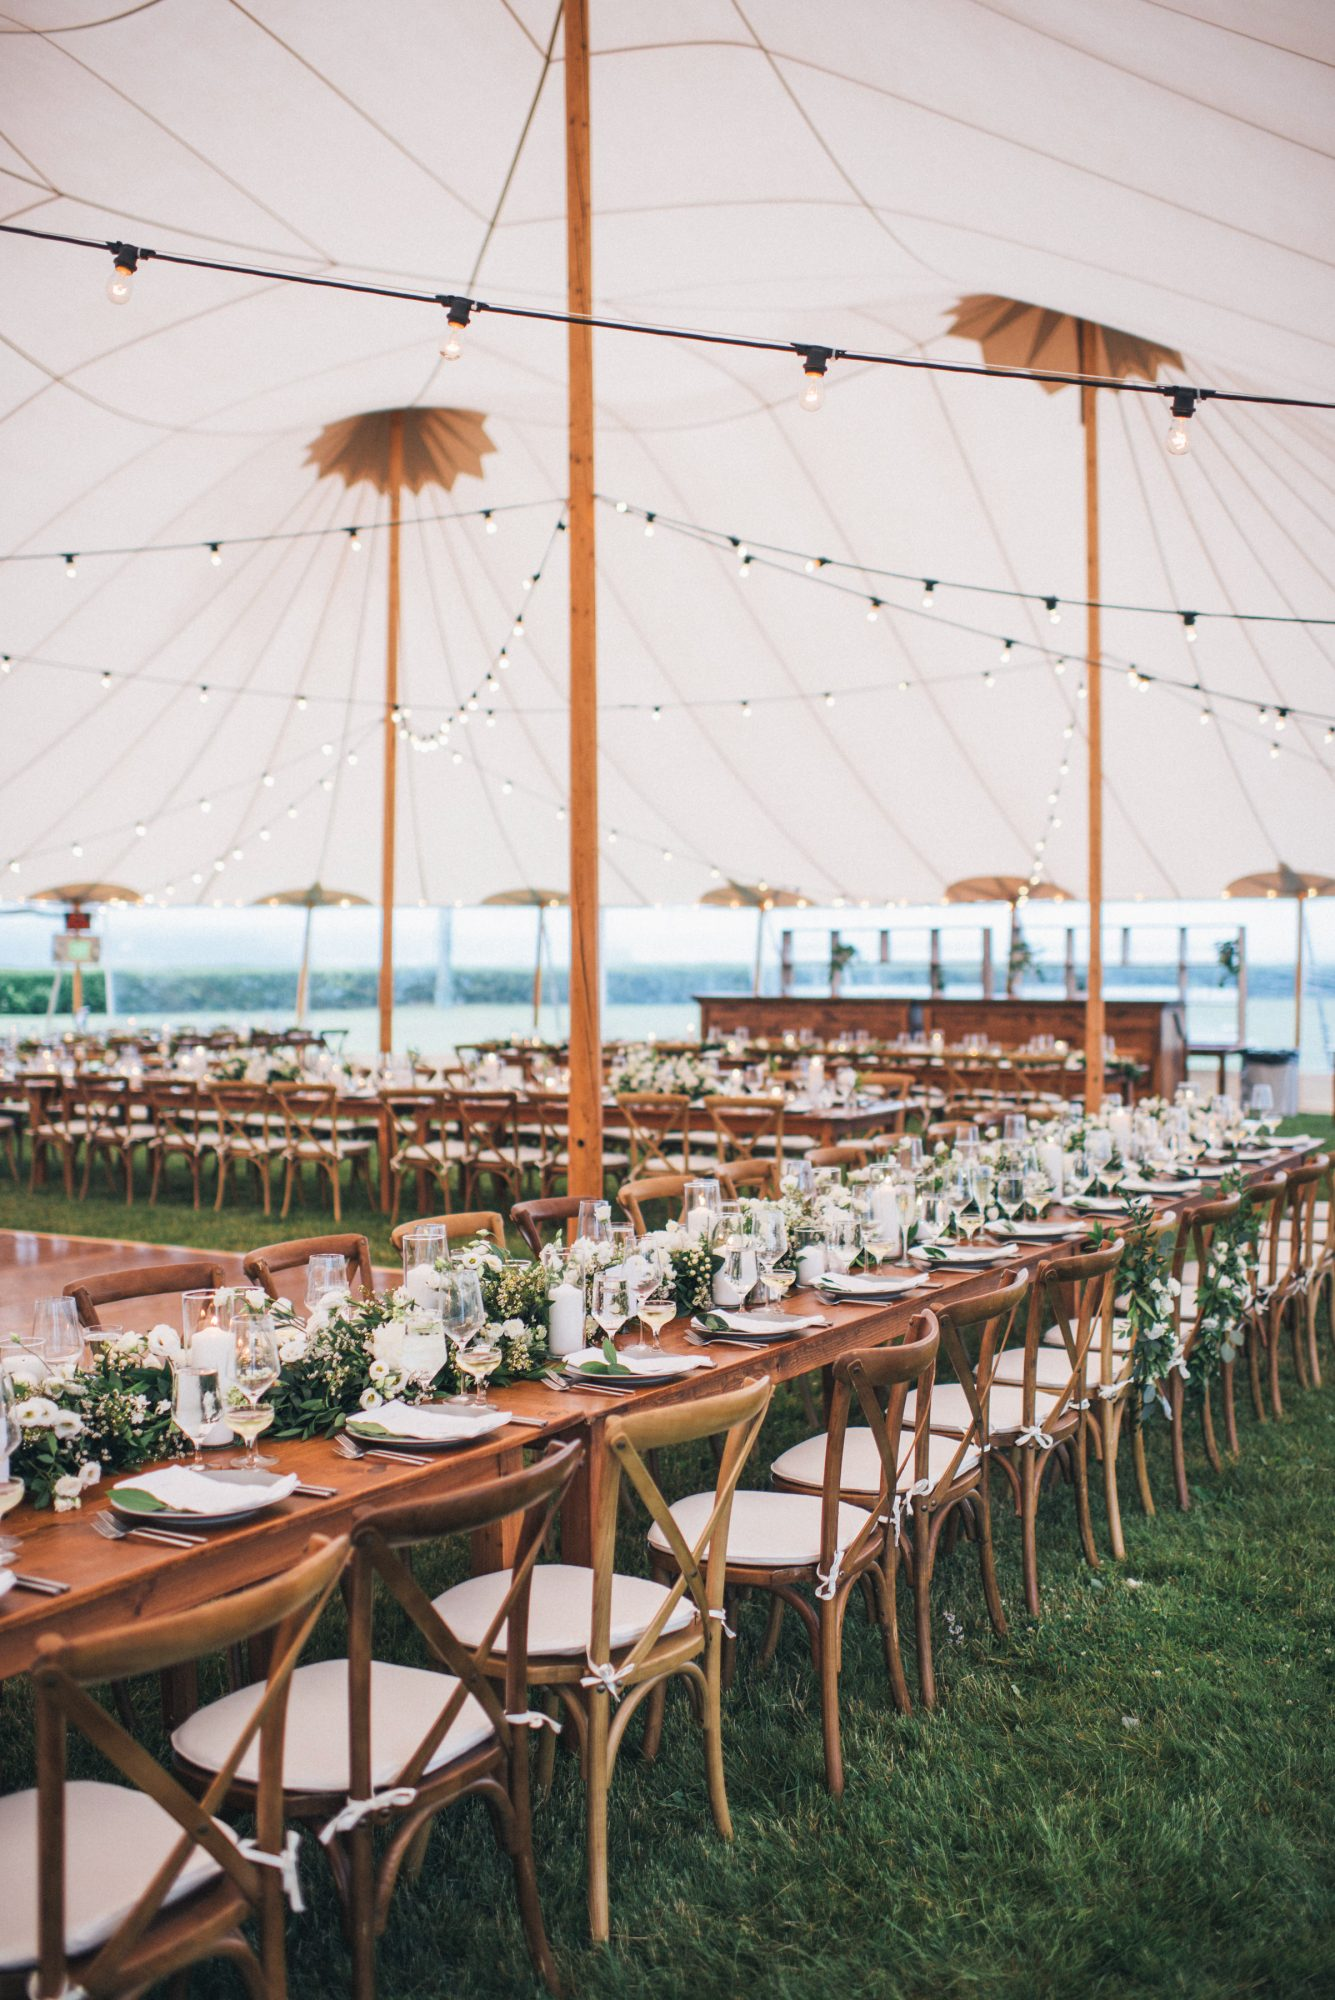 reception tables and chair lineup under tent with lighting